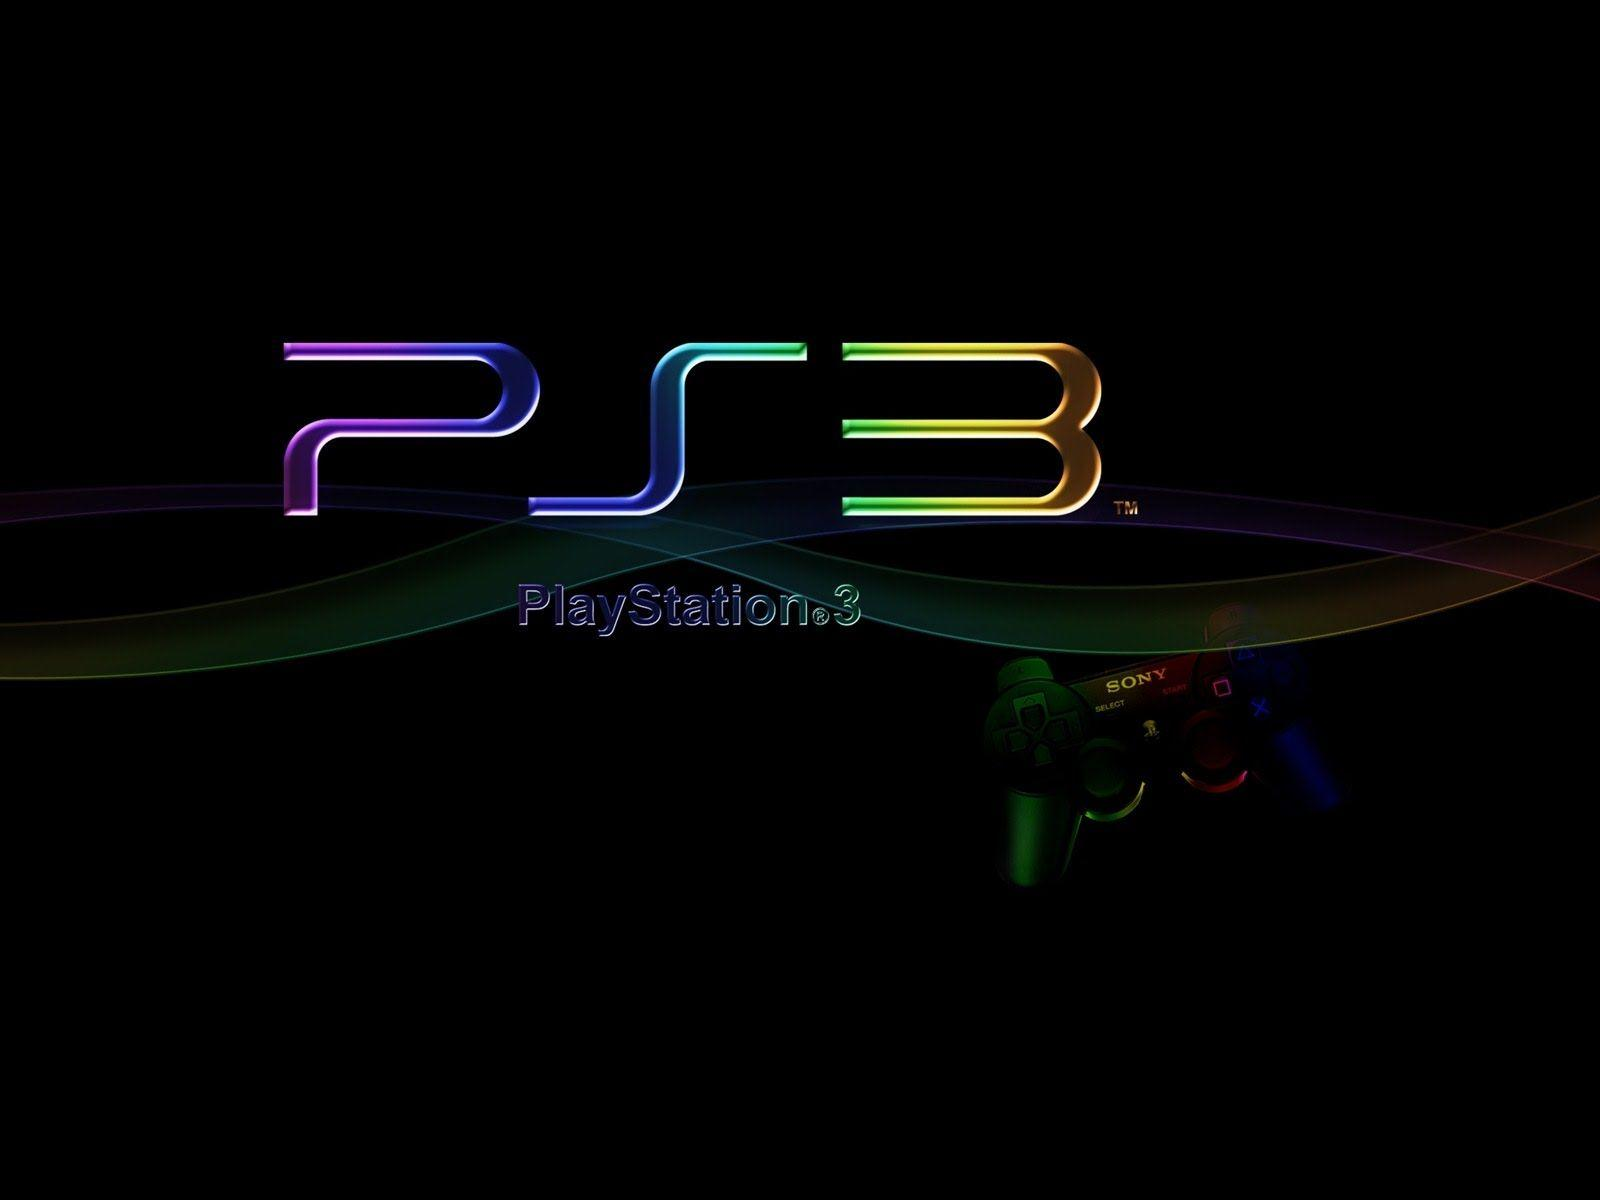 Playstation 3 Logo Wallpapers Wallpaper Cave